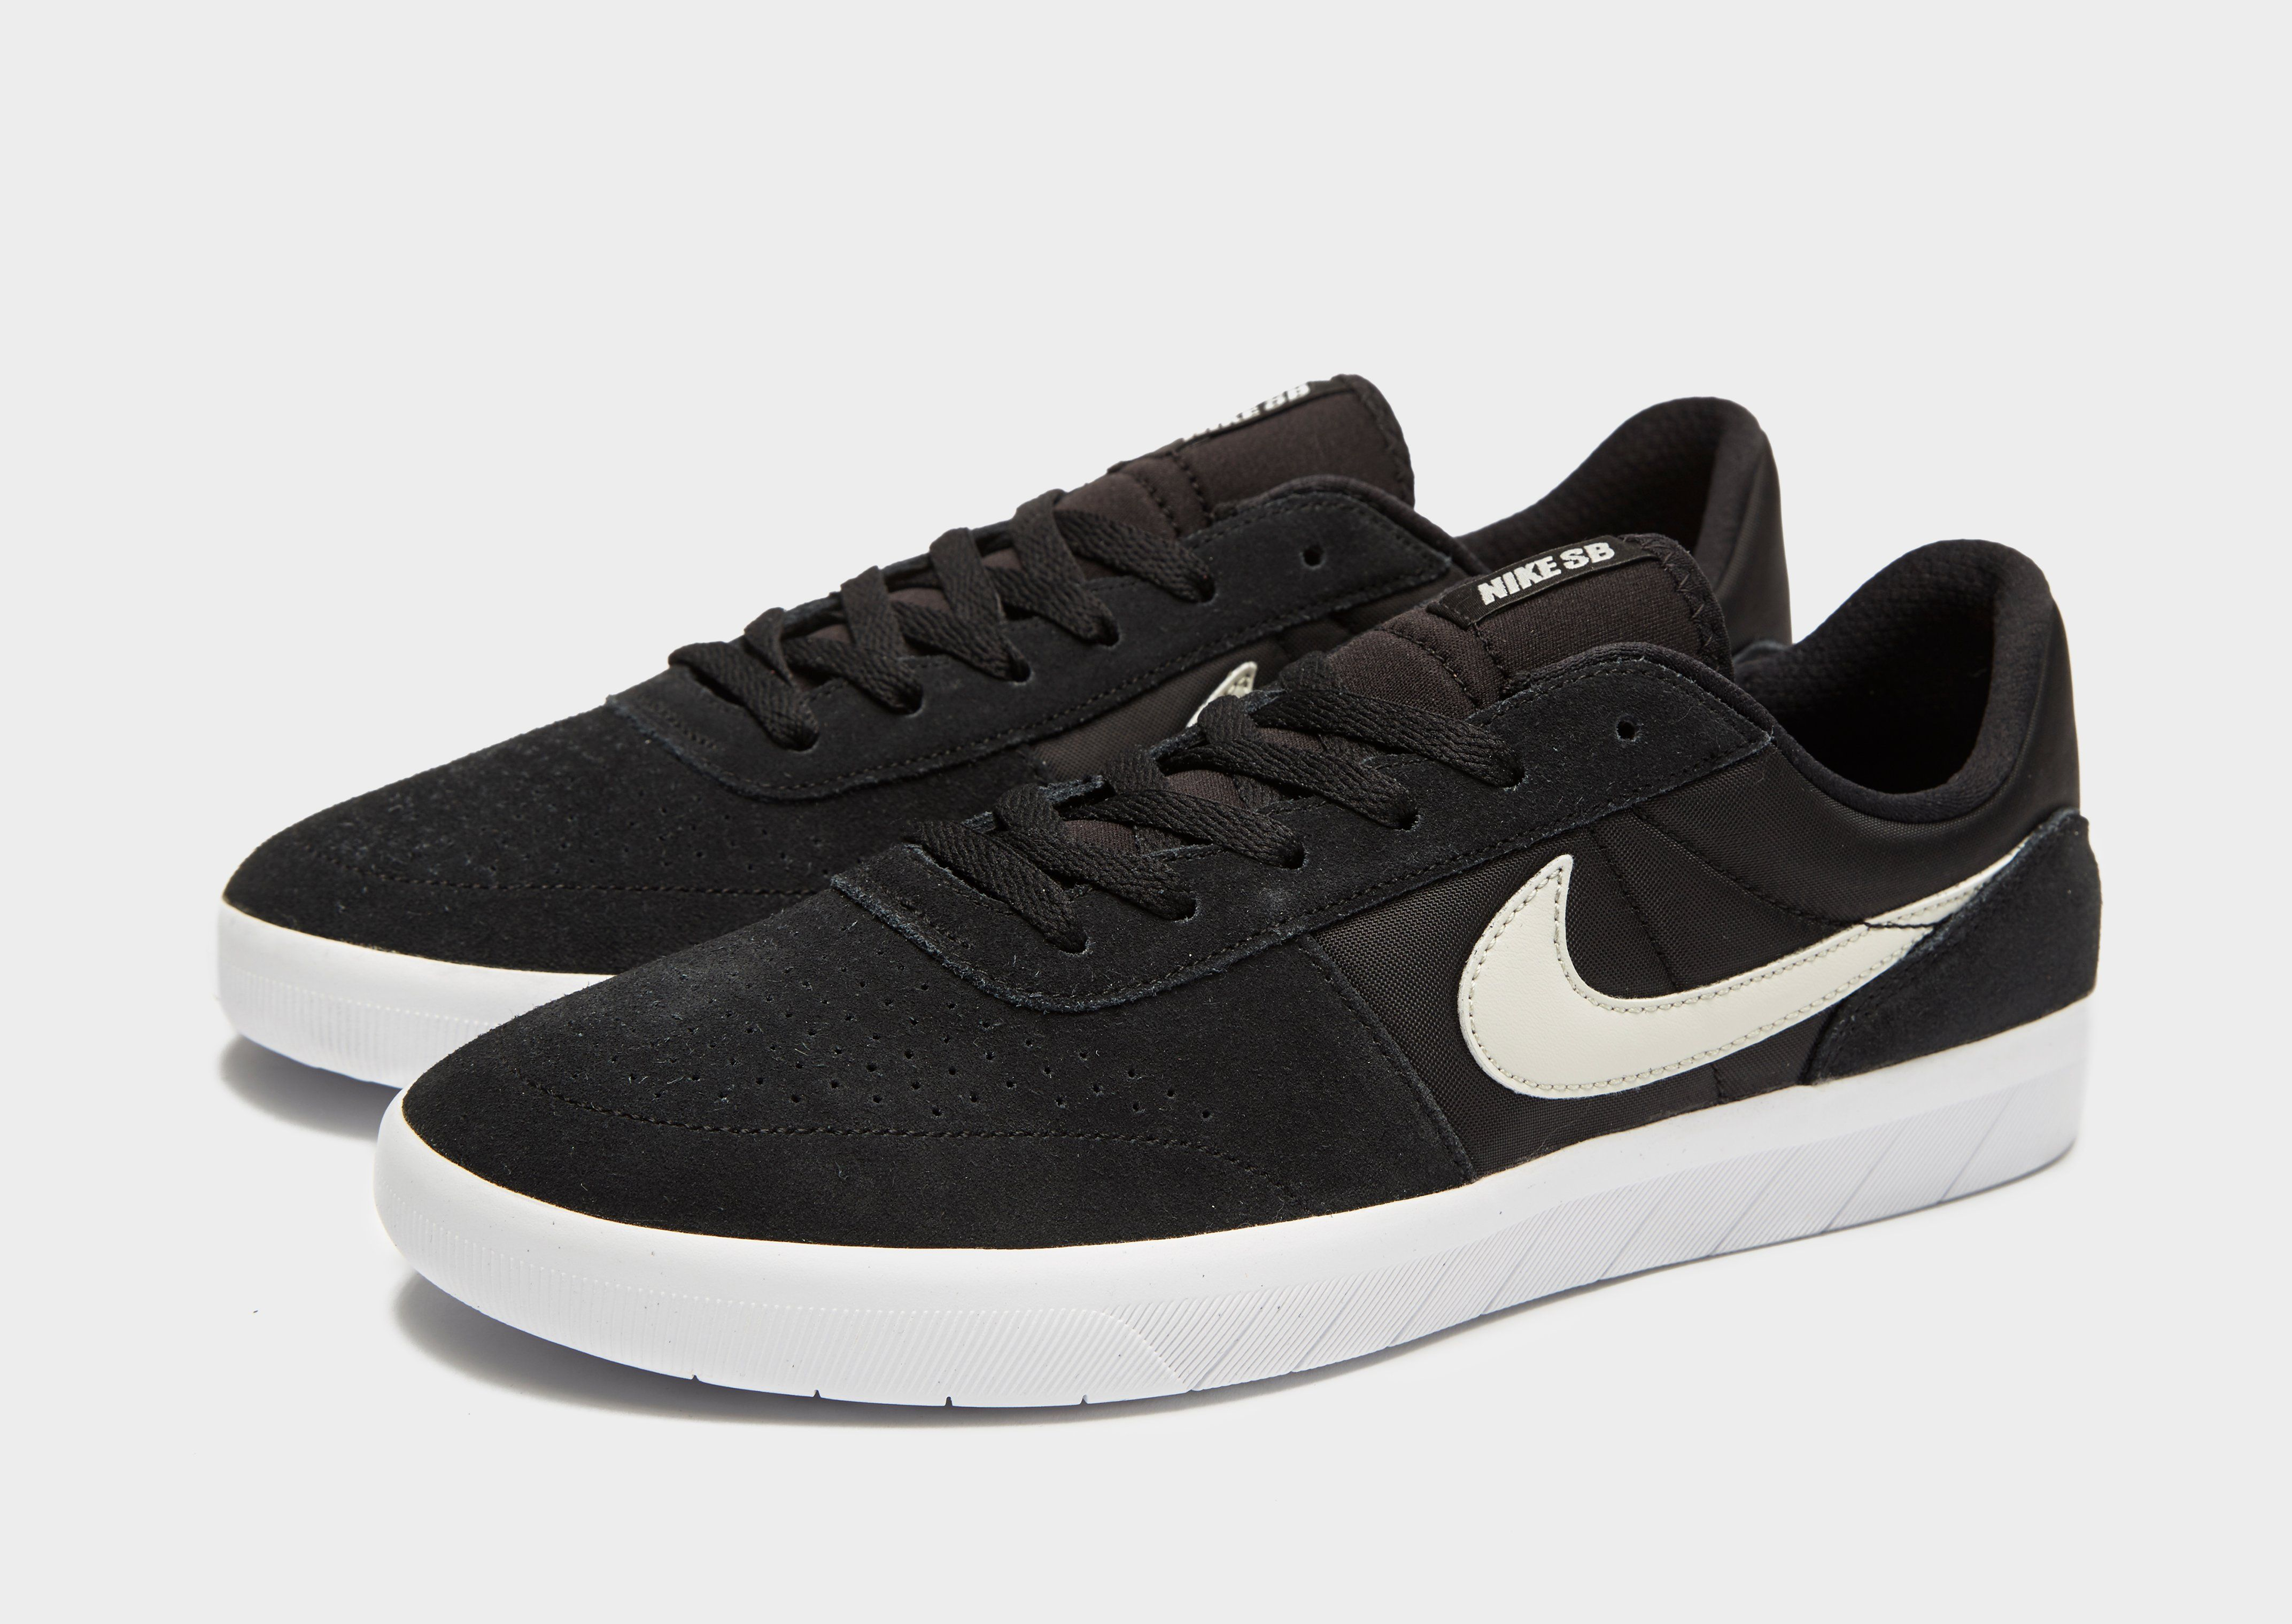 Nike Sb Team Classic chaussures noirNike